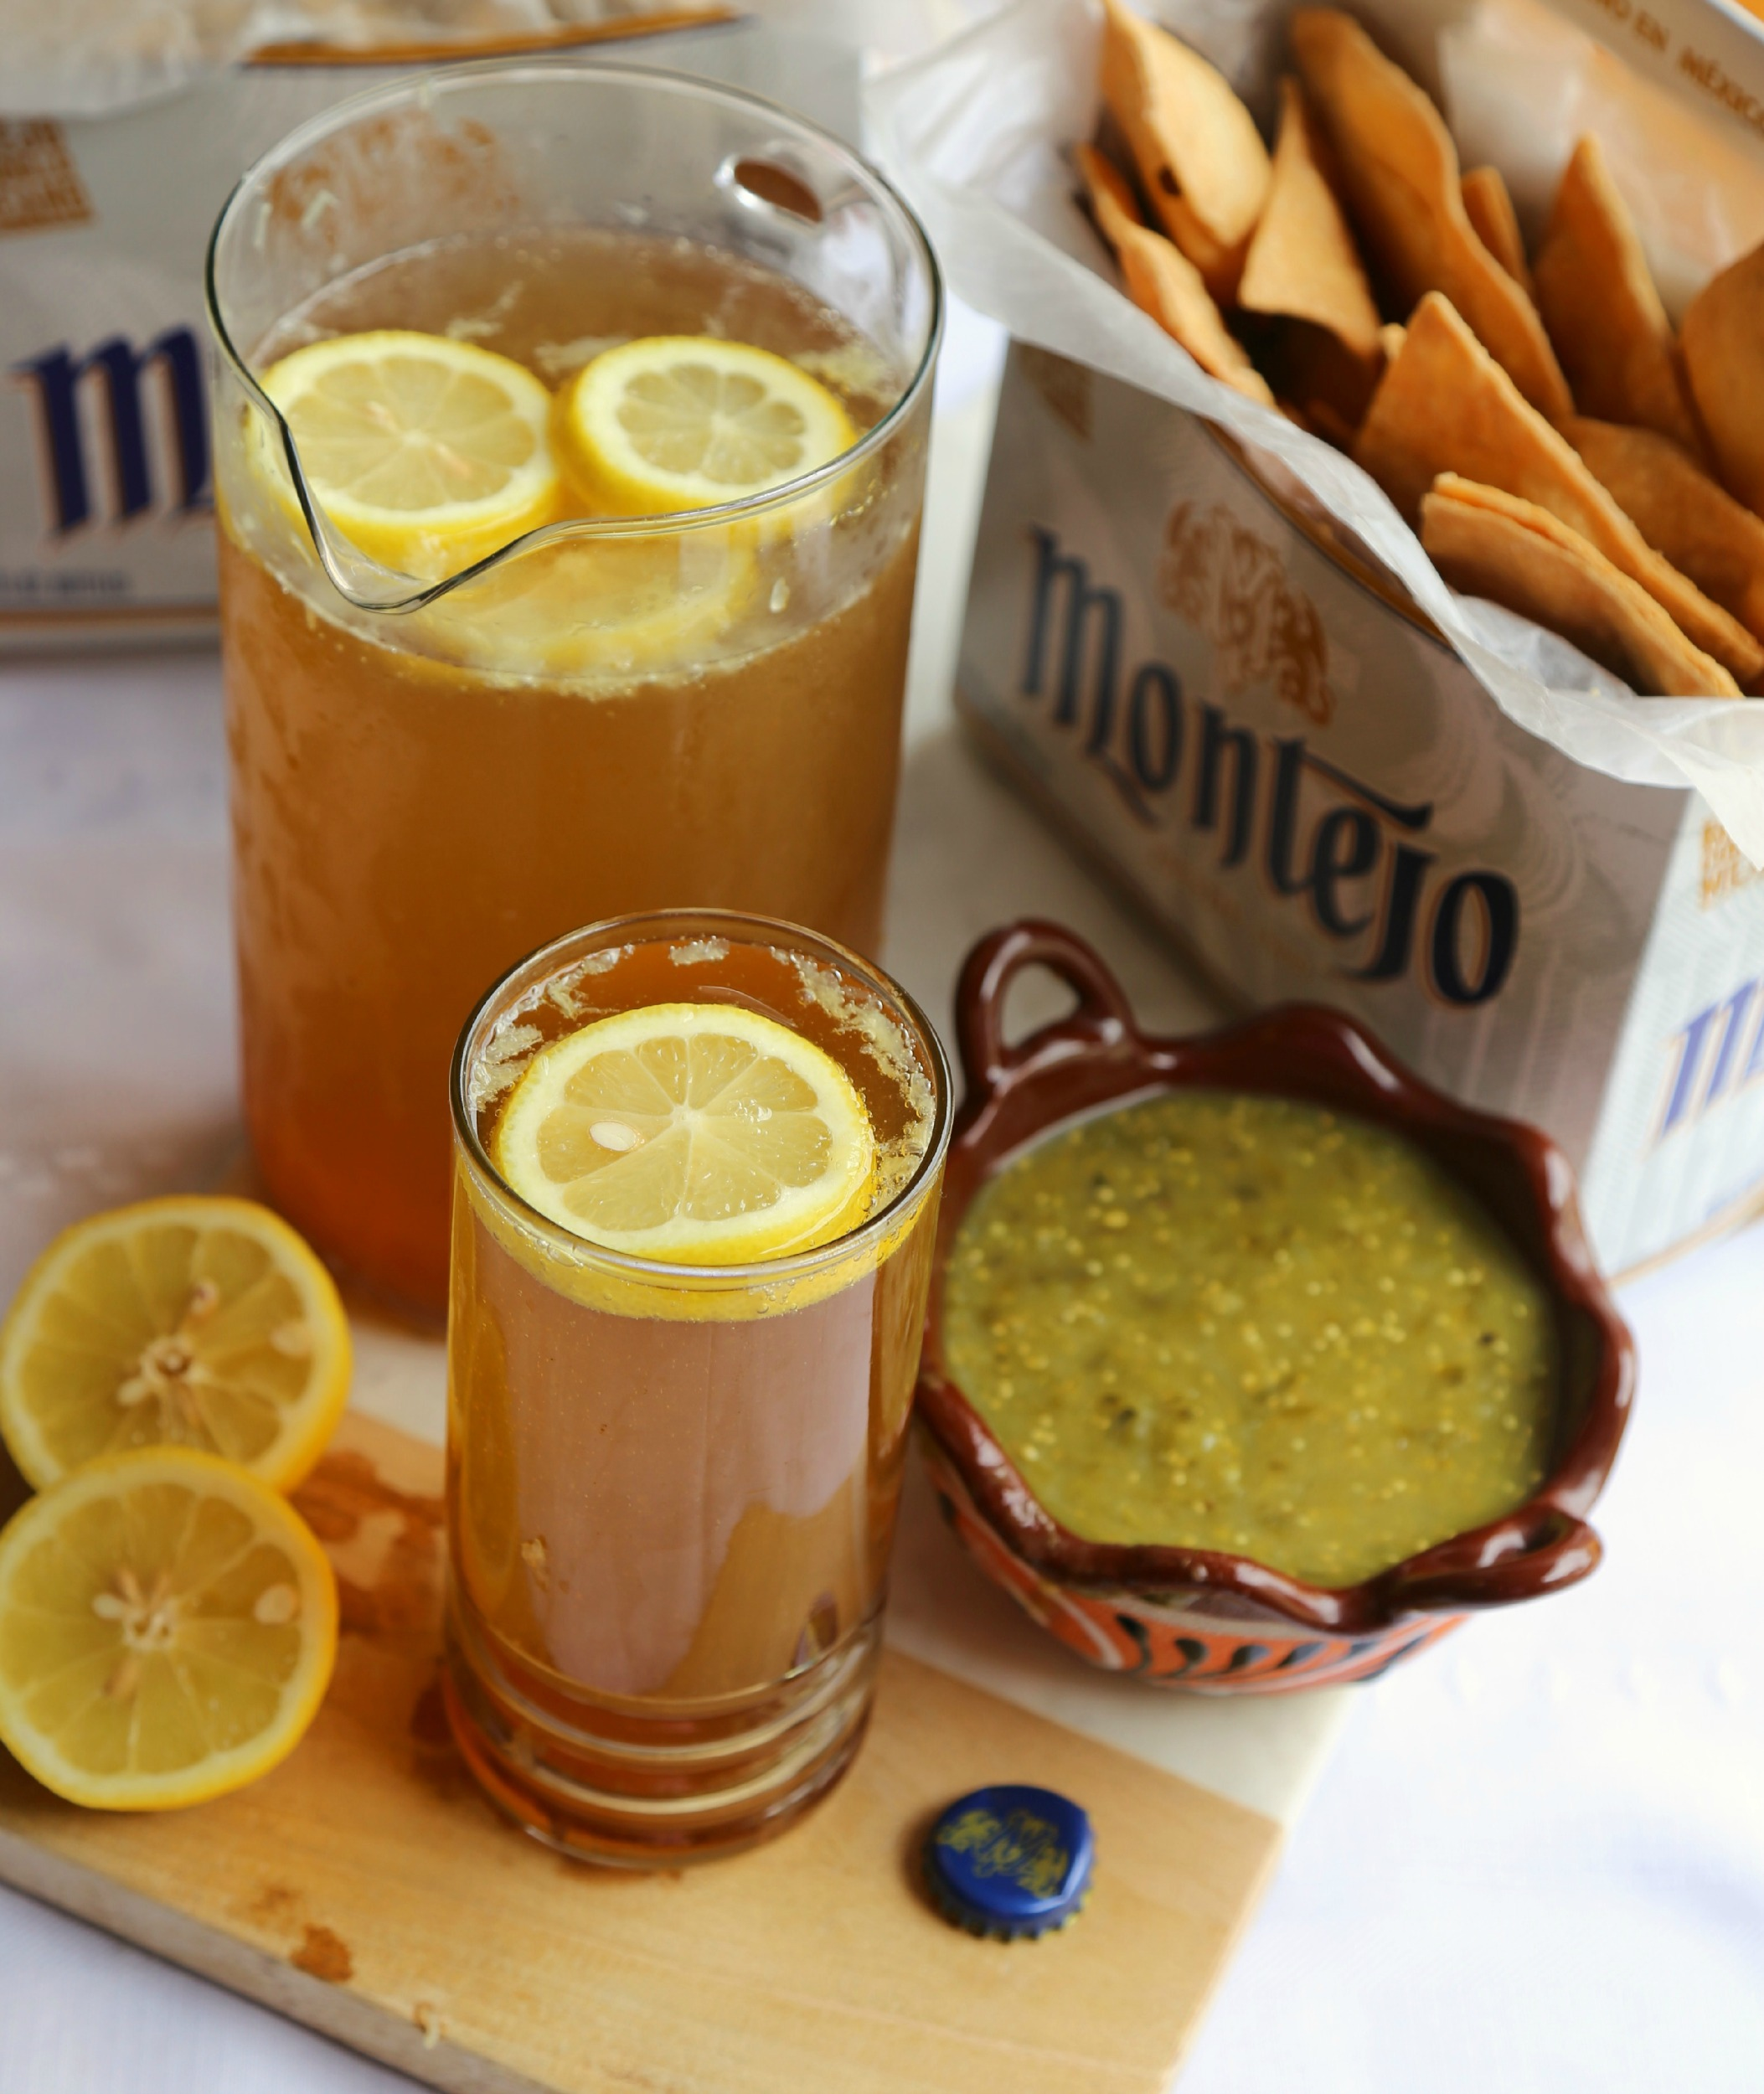 tamarind-lemonade-shandy-recipe-VianneyRodriguez-sweetlifebake-beercocktail